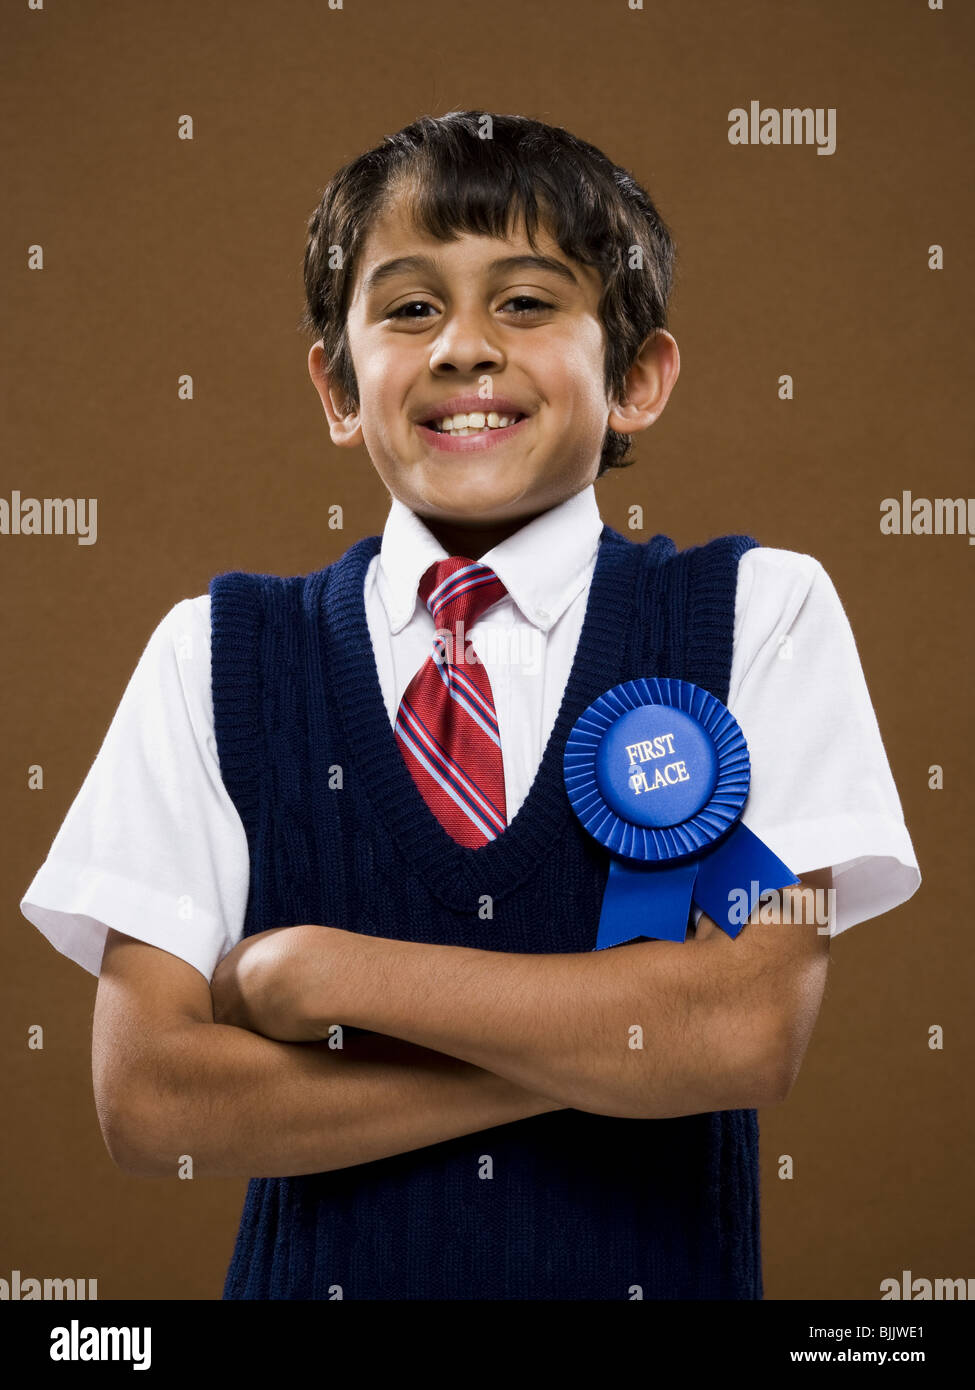 Boy with first place ribbon and arms crossed smiling - Stock Image